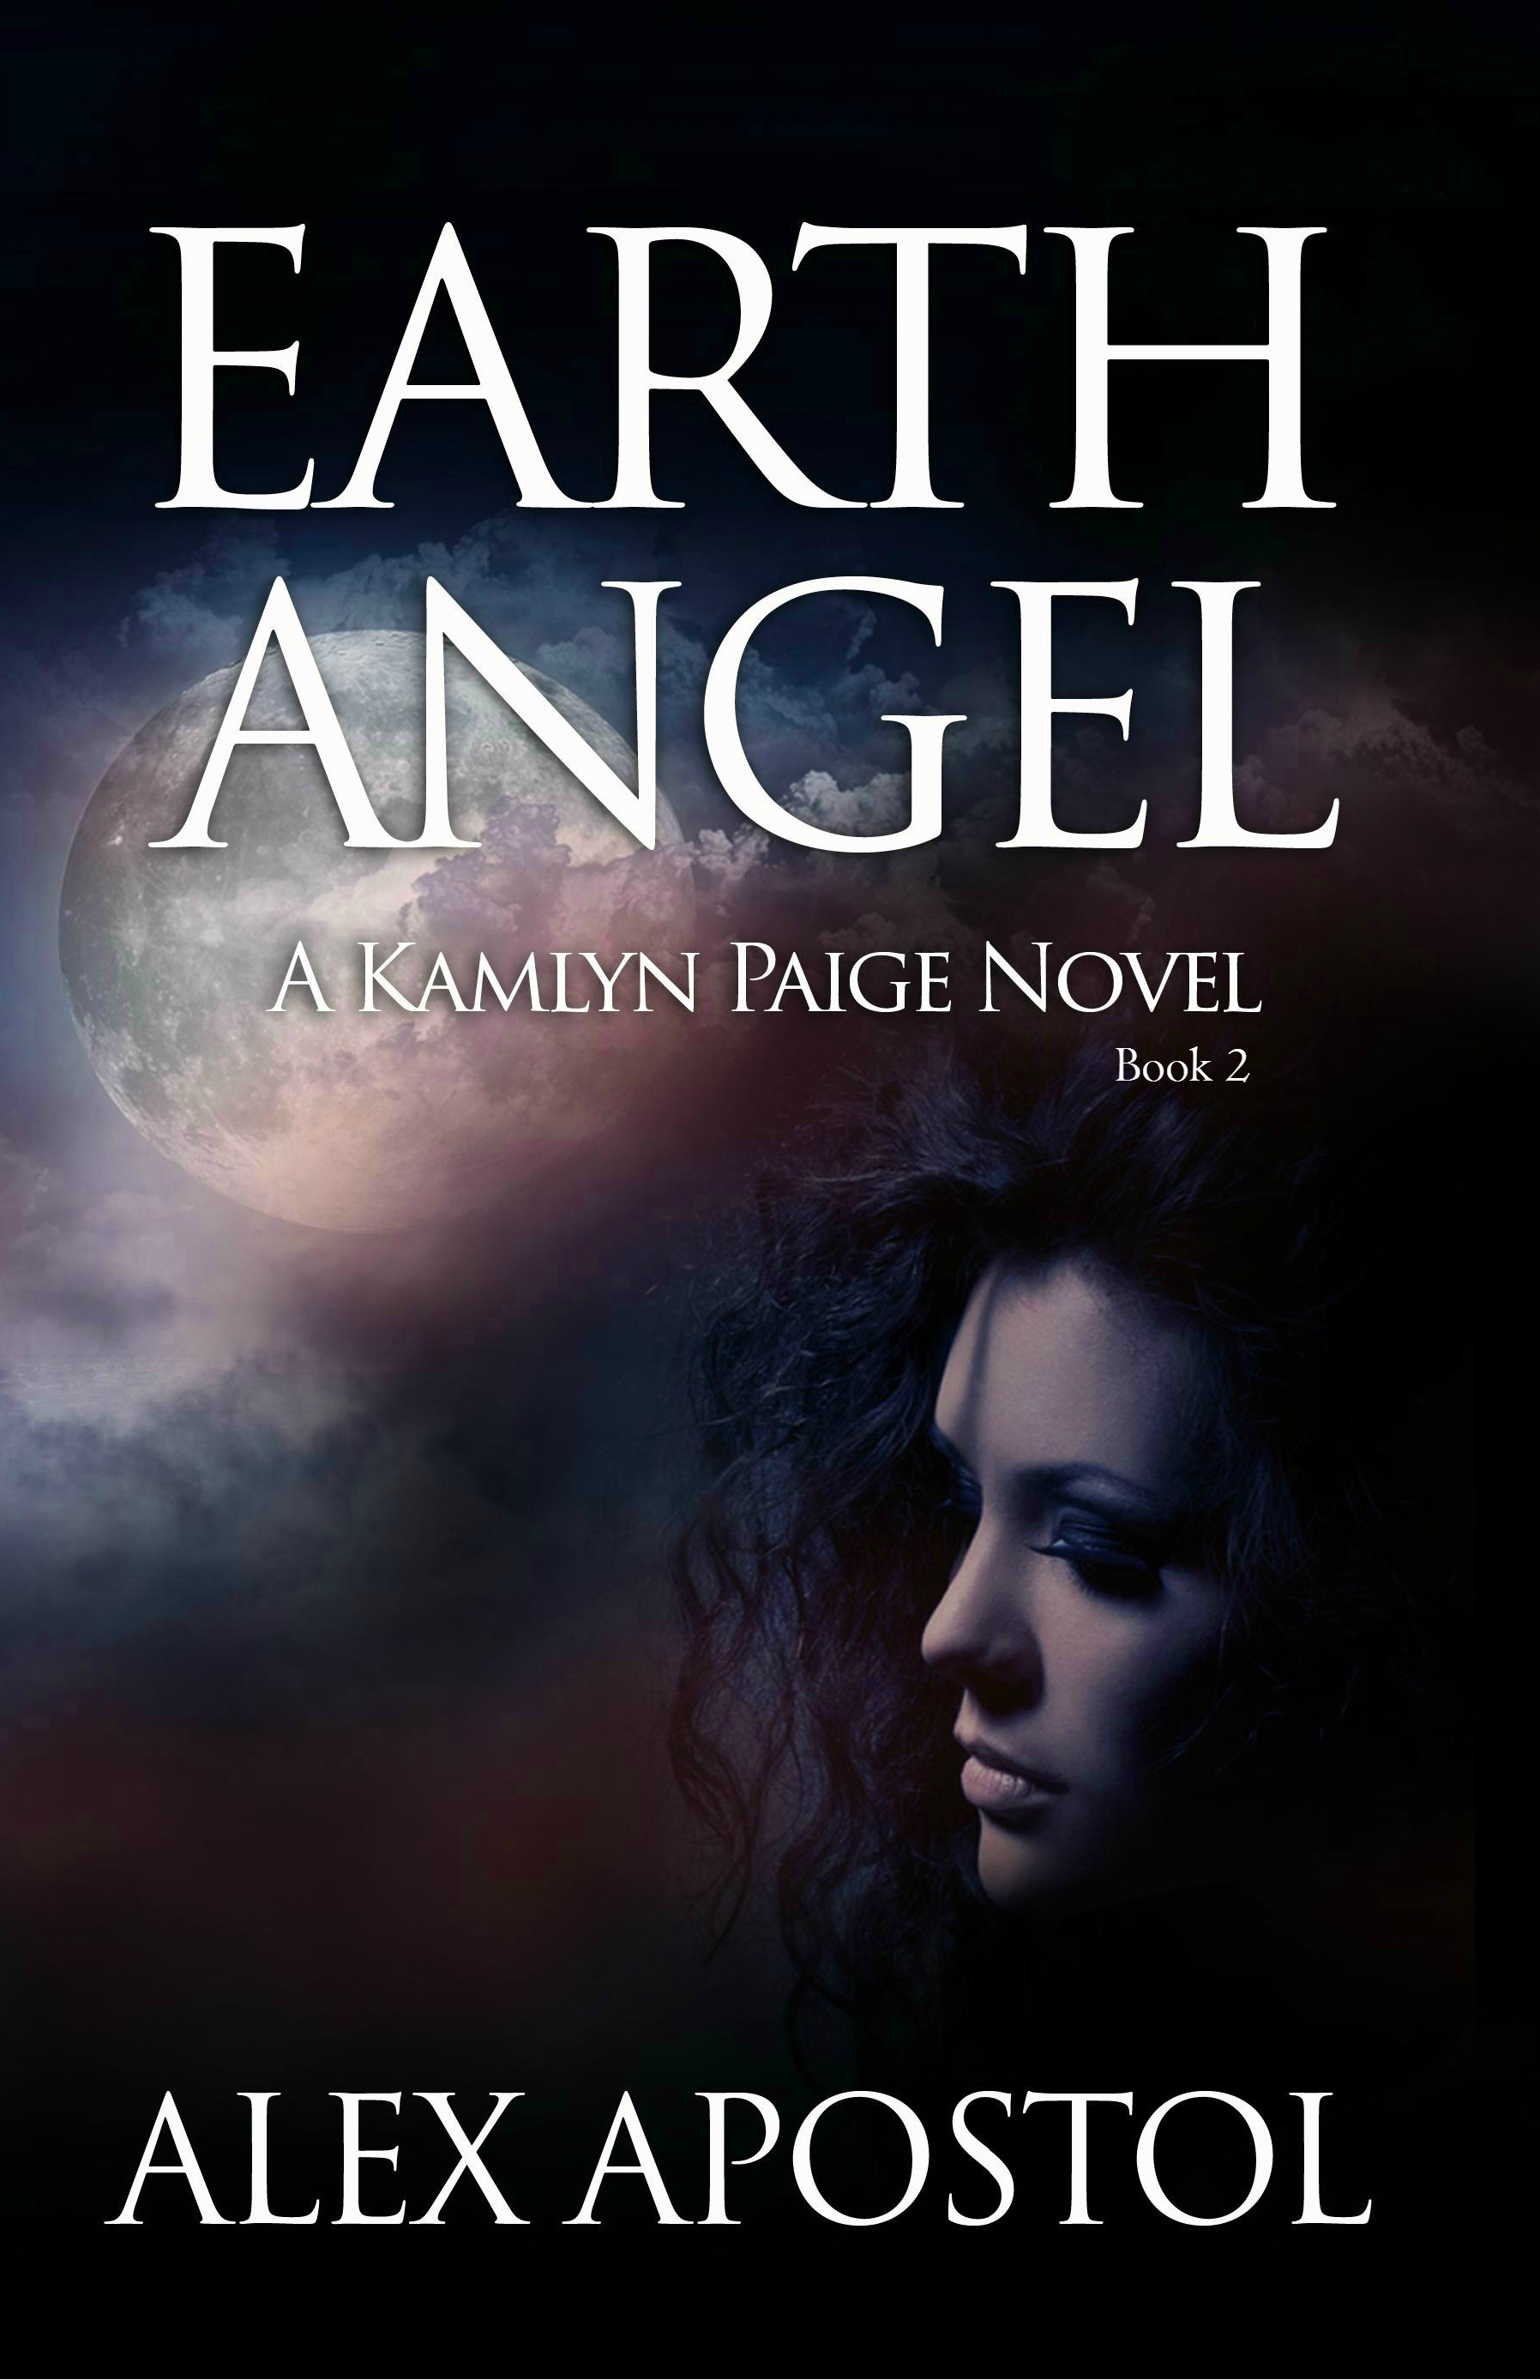 earth-angel-kindle-final-1